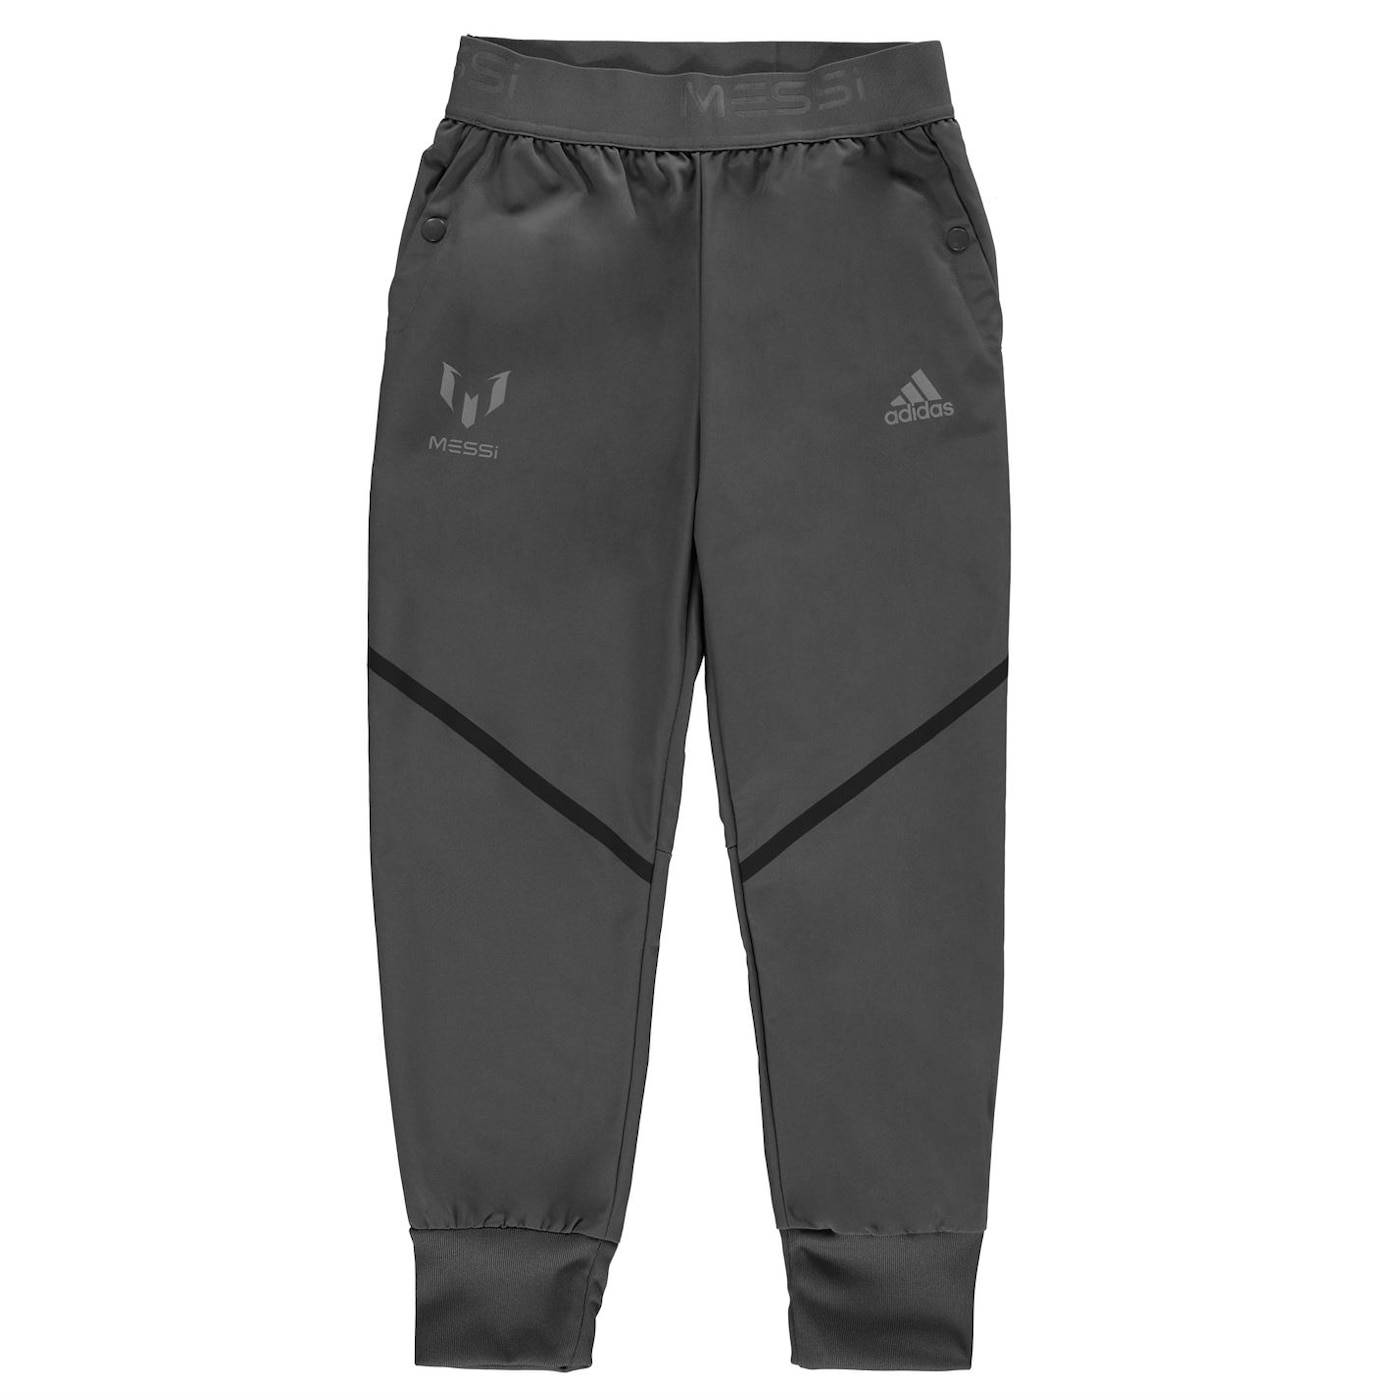 Adidas Messi Track Pants Junior Boys